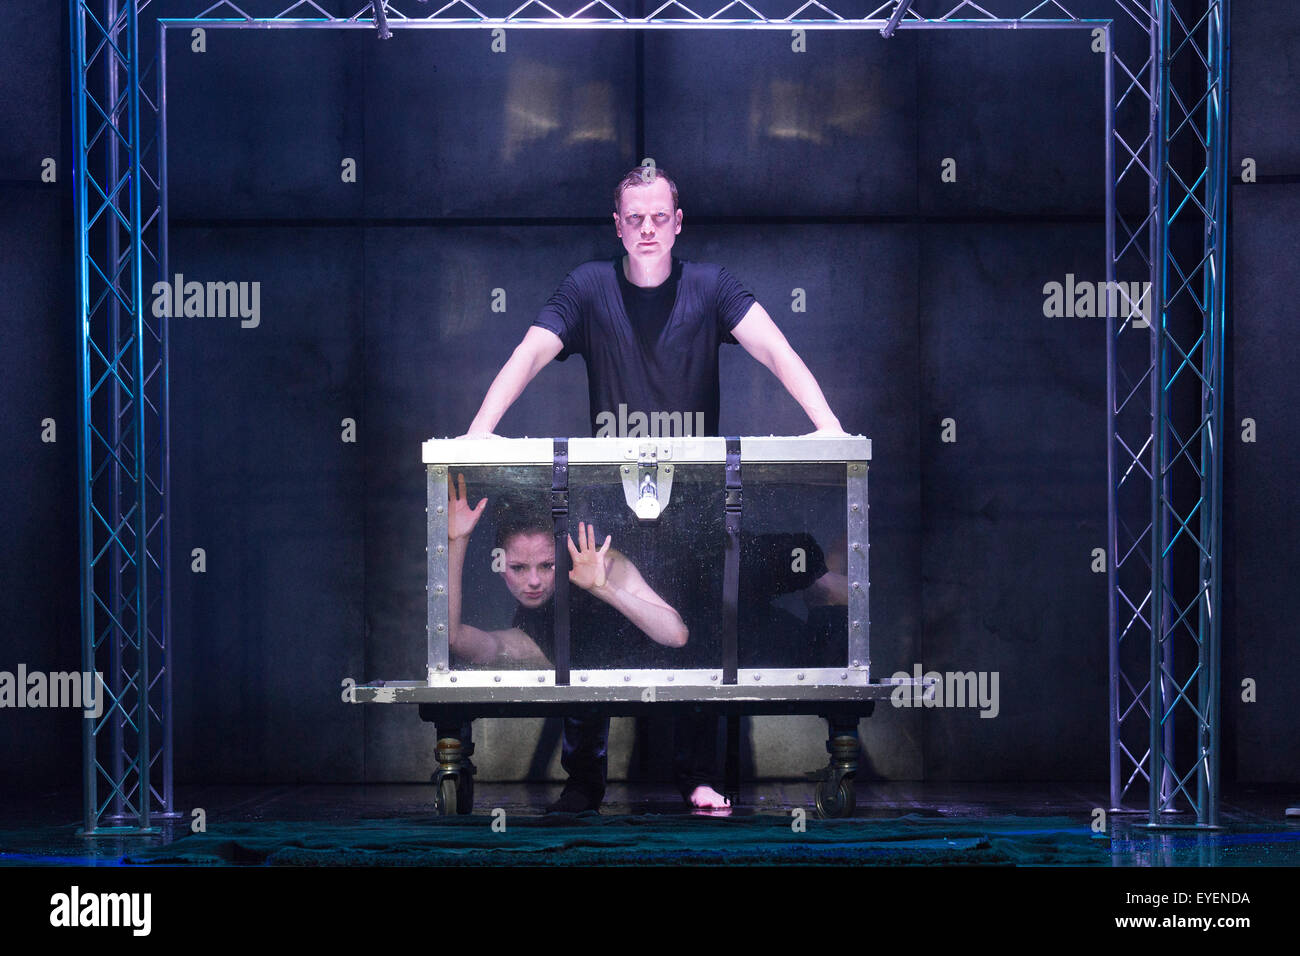 Water Tank Magic : London uk july pictured escapology stunt with